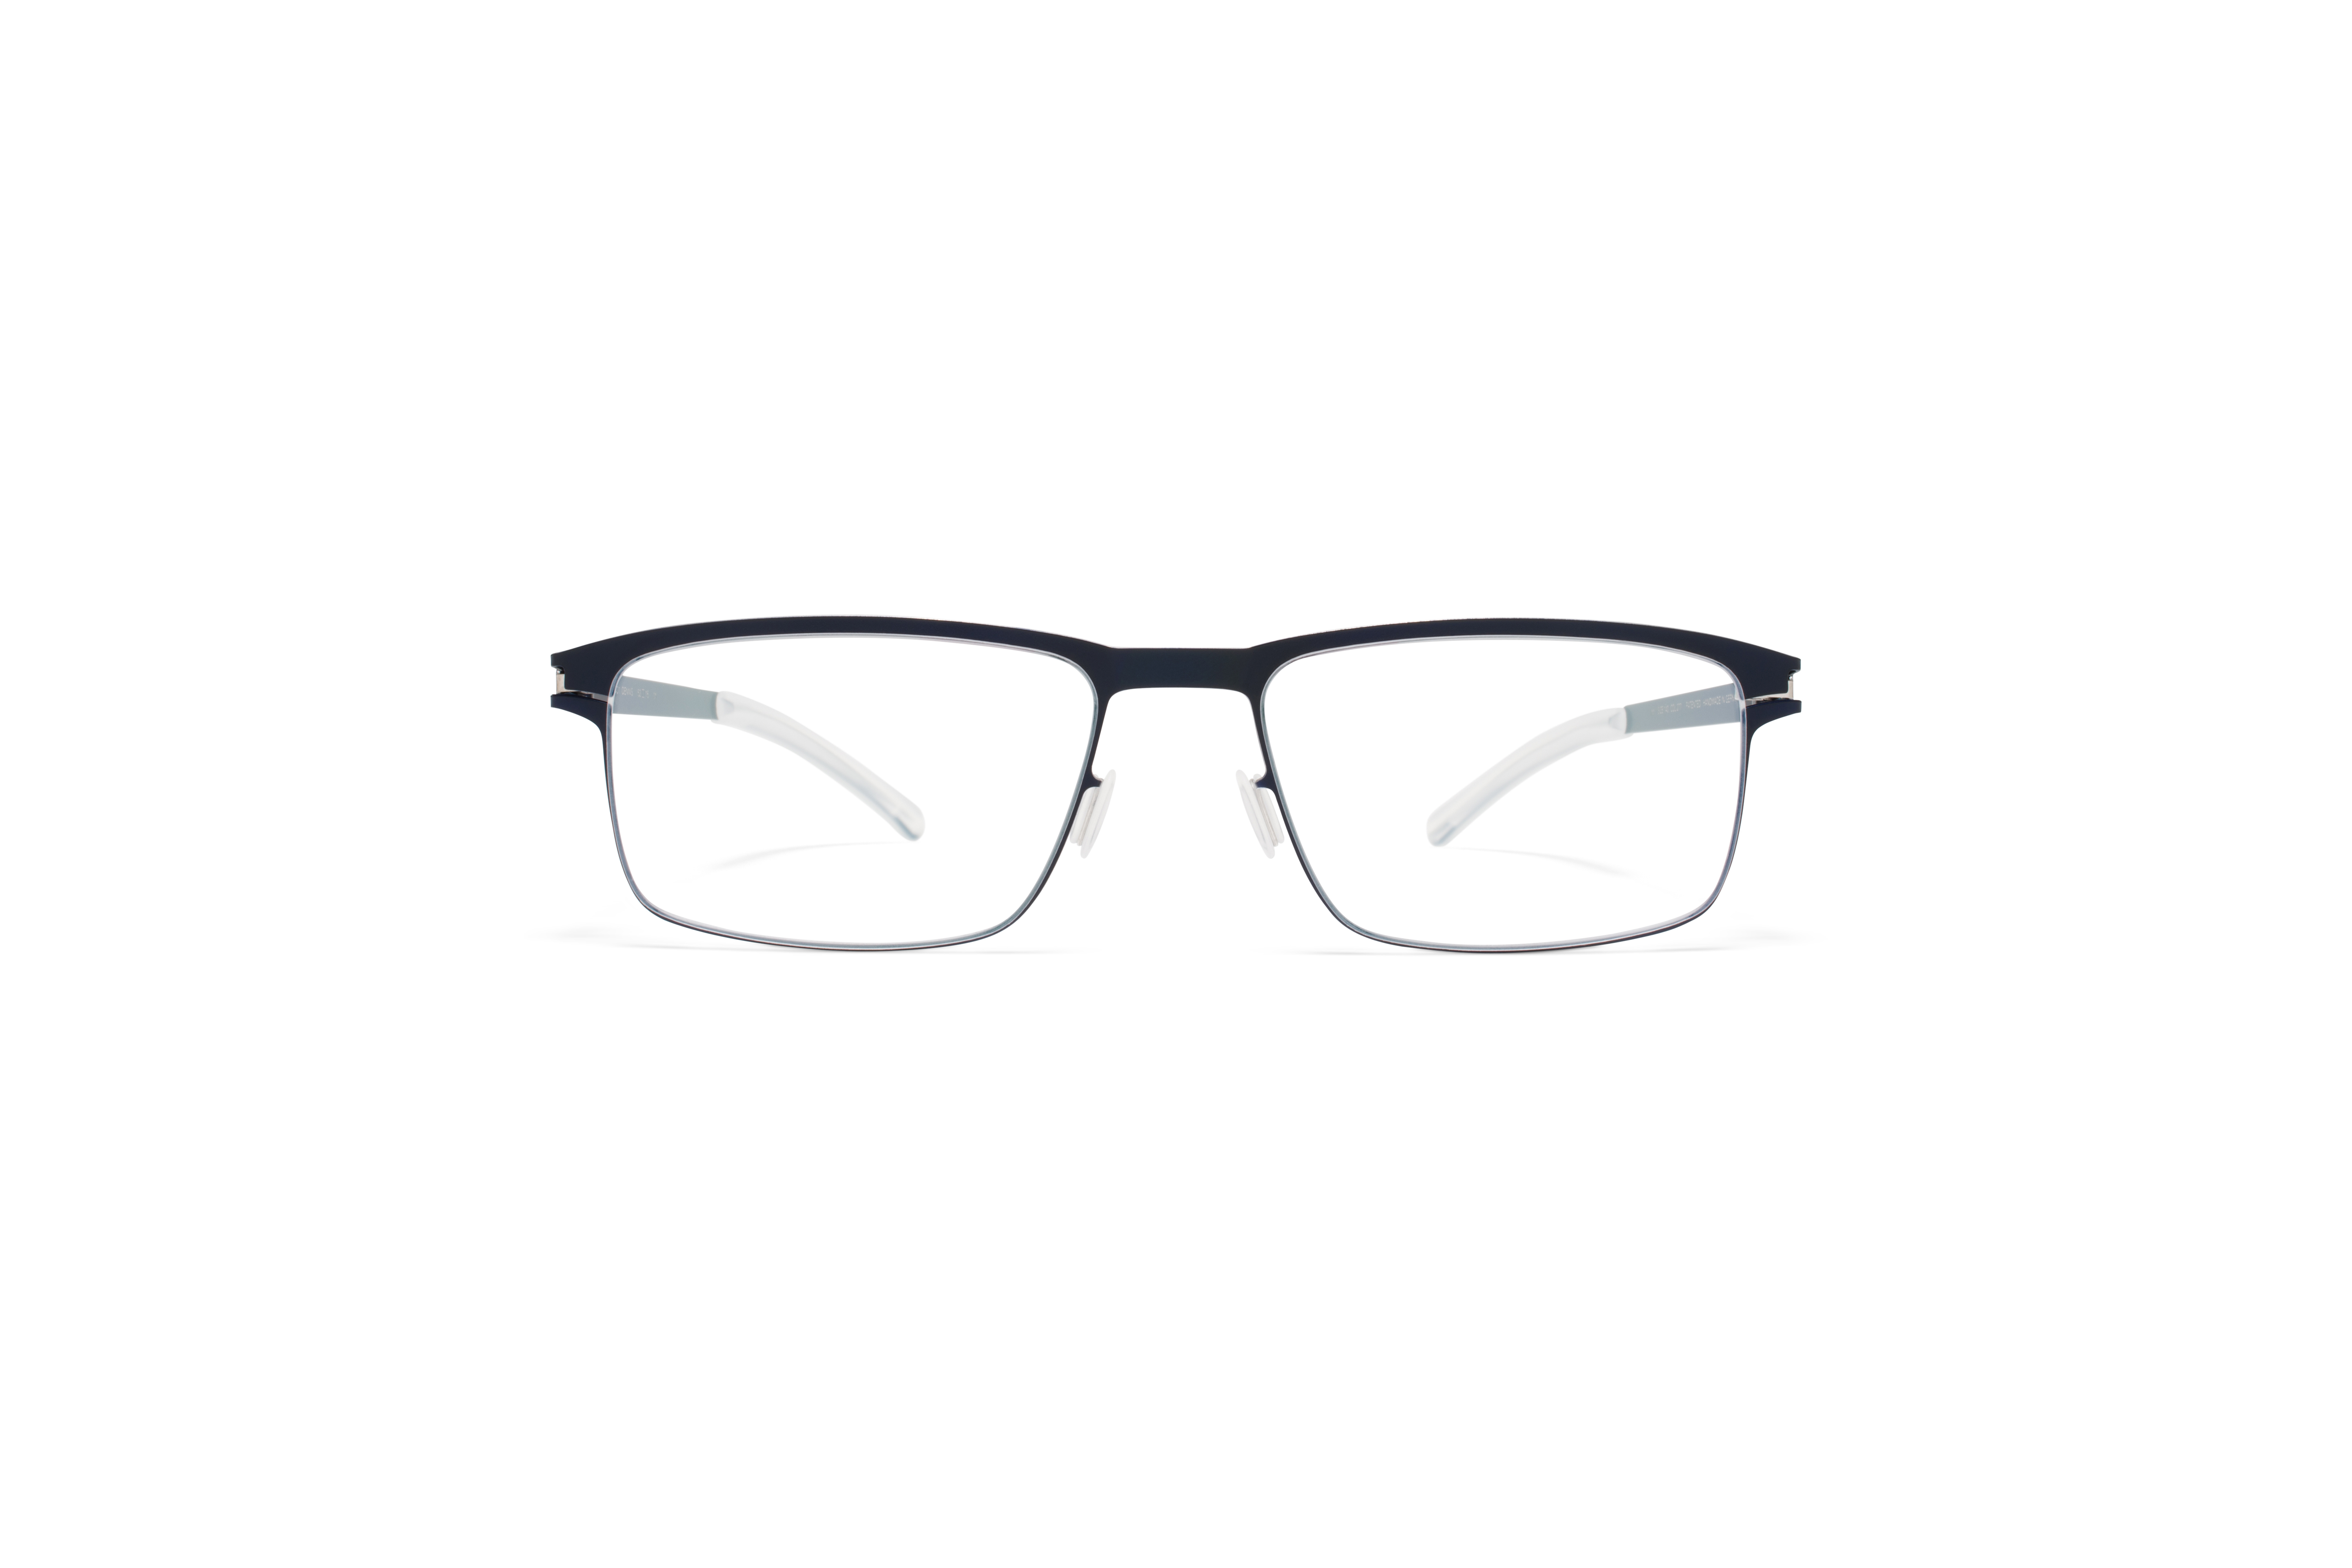 Mykita Glasses | Korean Glass Frames | Mykita Eyewear Discount